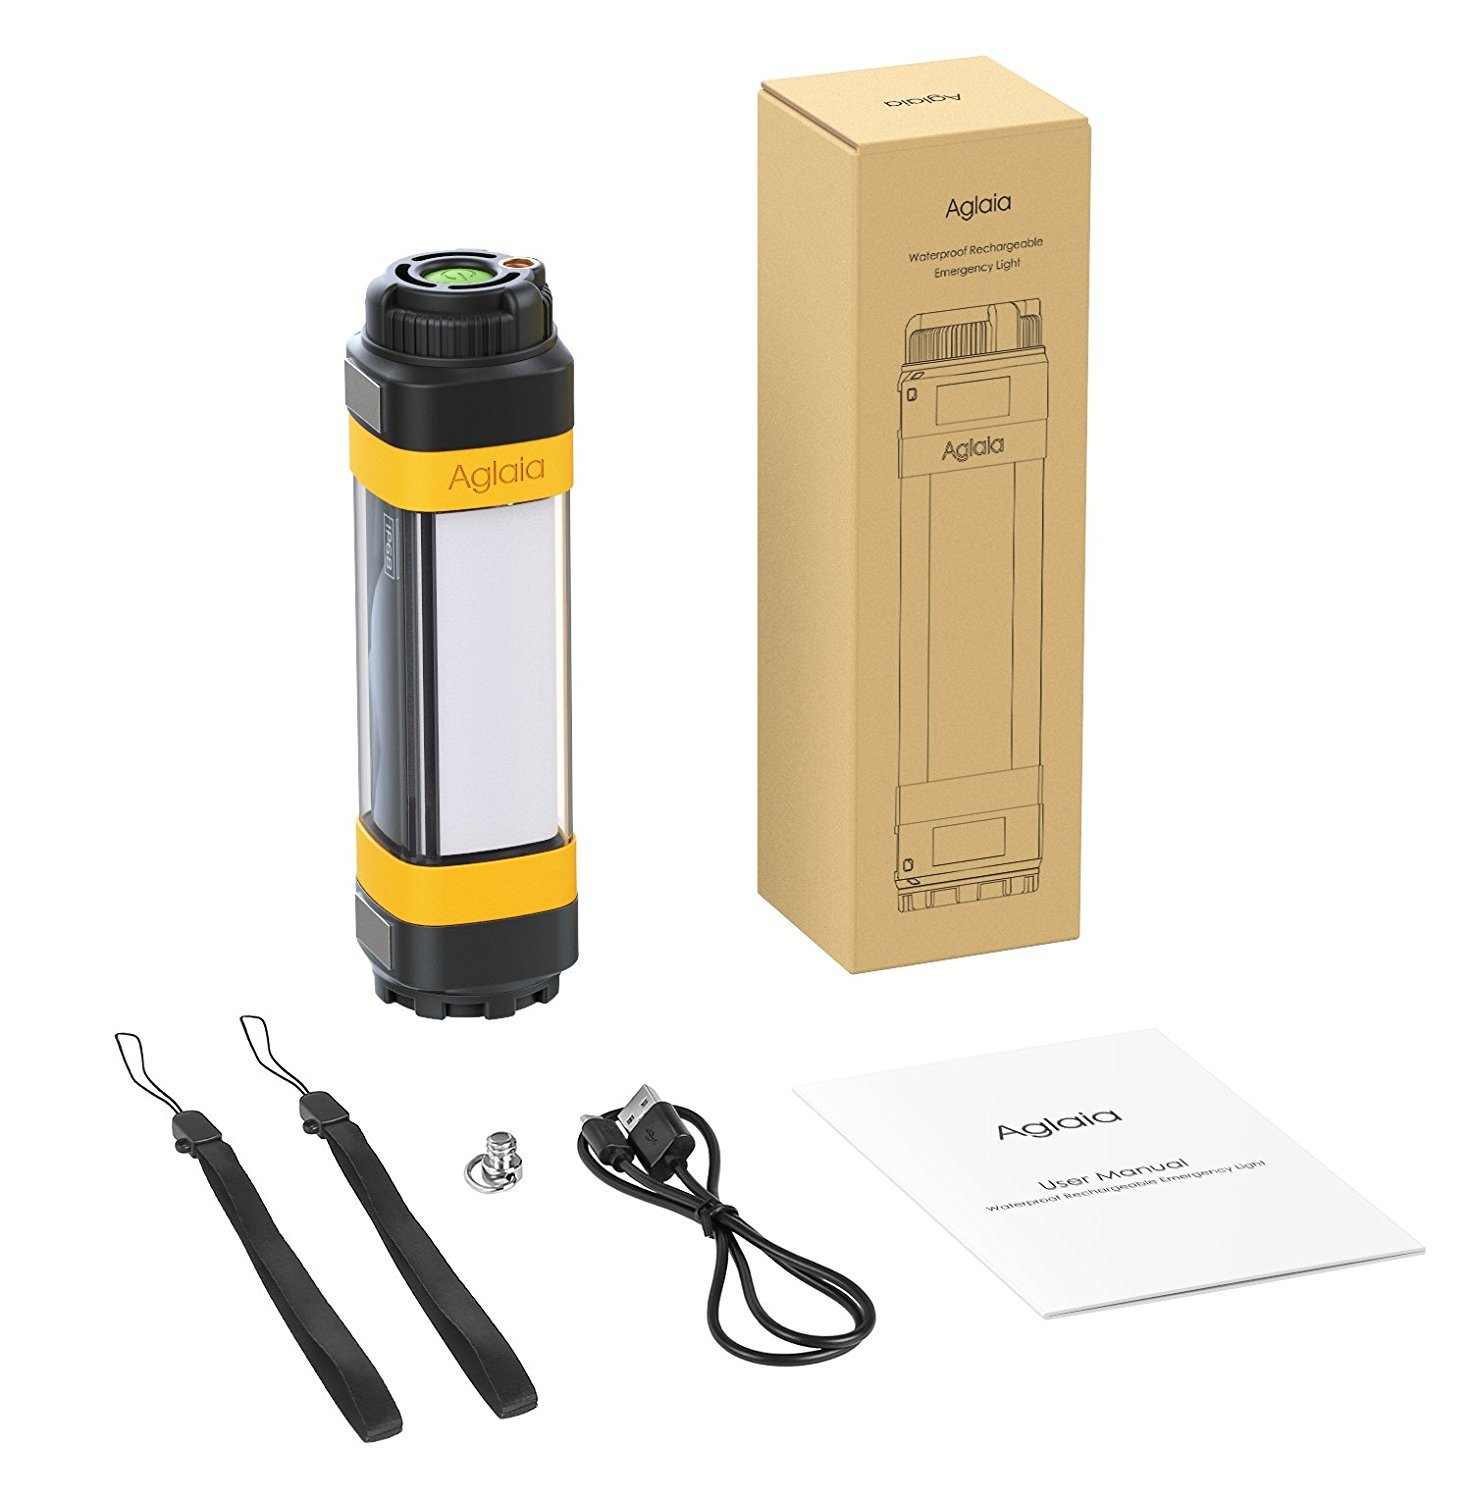 Aglaia 380LM Portable Ultra Bright Handheld LED Flashlight with Adjustable Focus and 7 Light Modes, Outdoor Water Resistant Torch, Powered Tactical Flashlight for Camping Hiking etc